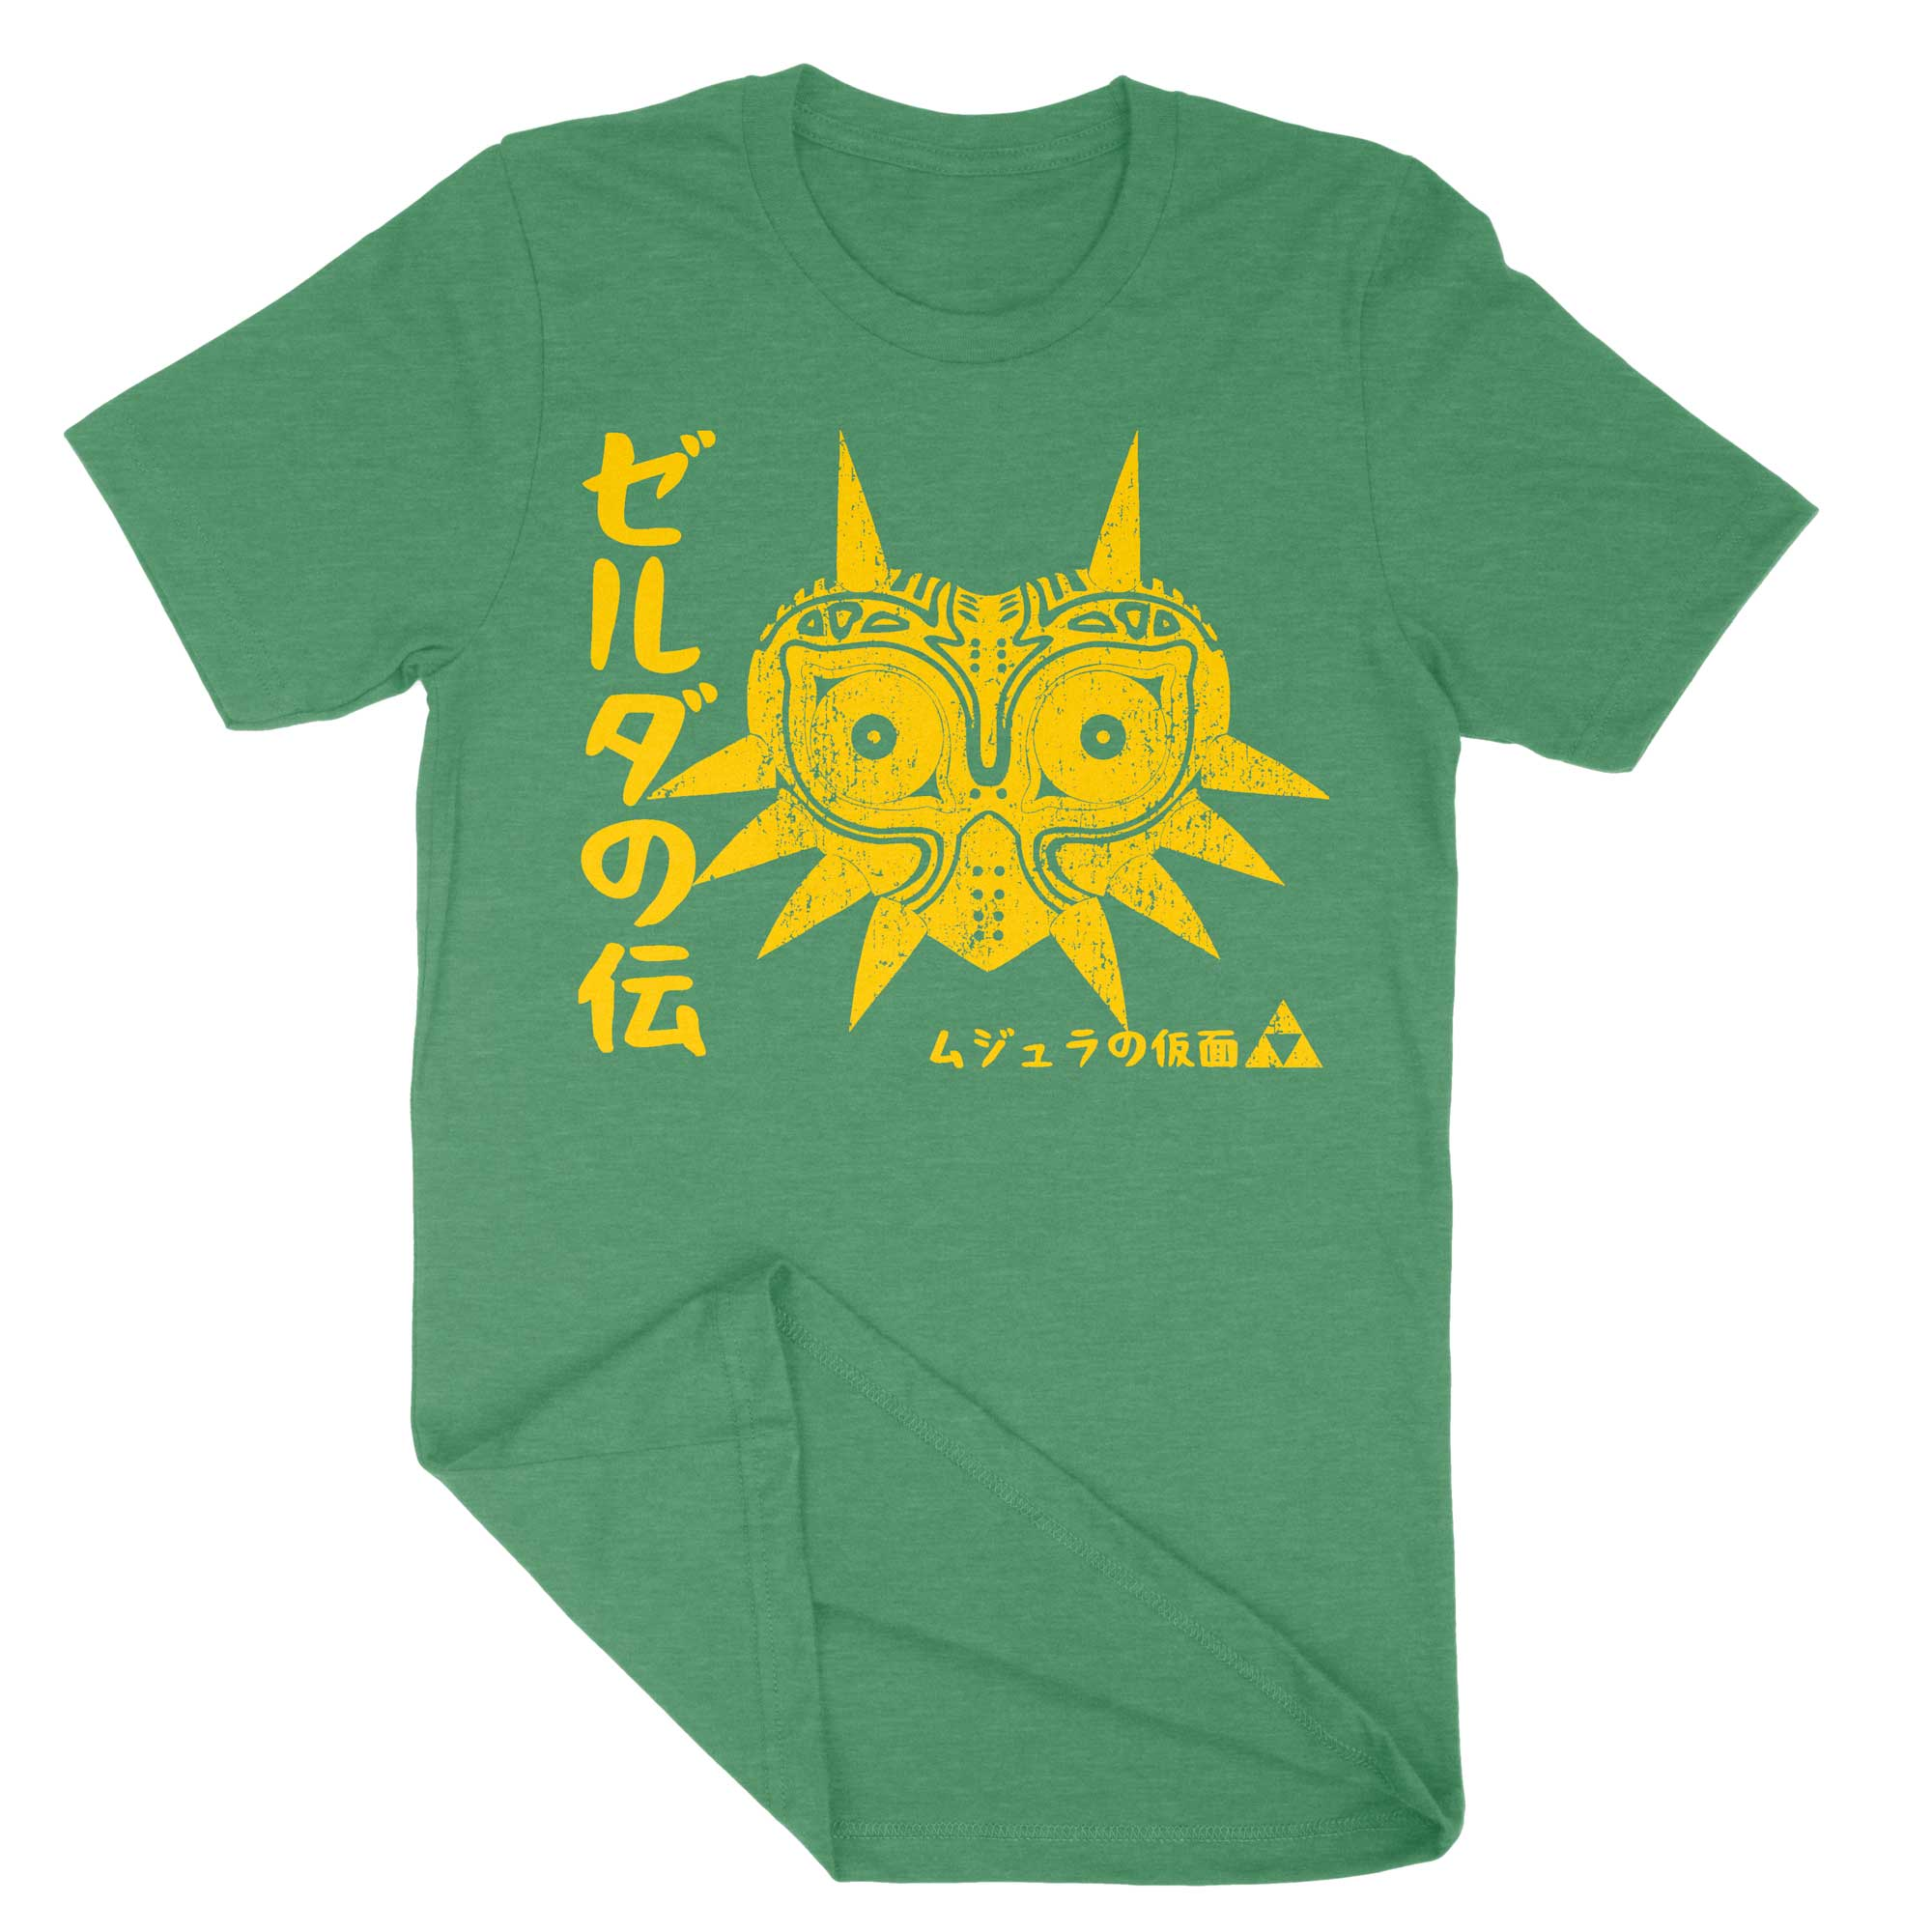 Majoras Mask Japanese Vintage Shirt-T-Shirts-Shirtasaurus-Premium-XS-Heather Kelly Green-Shirtasaurus